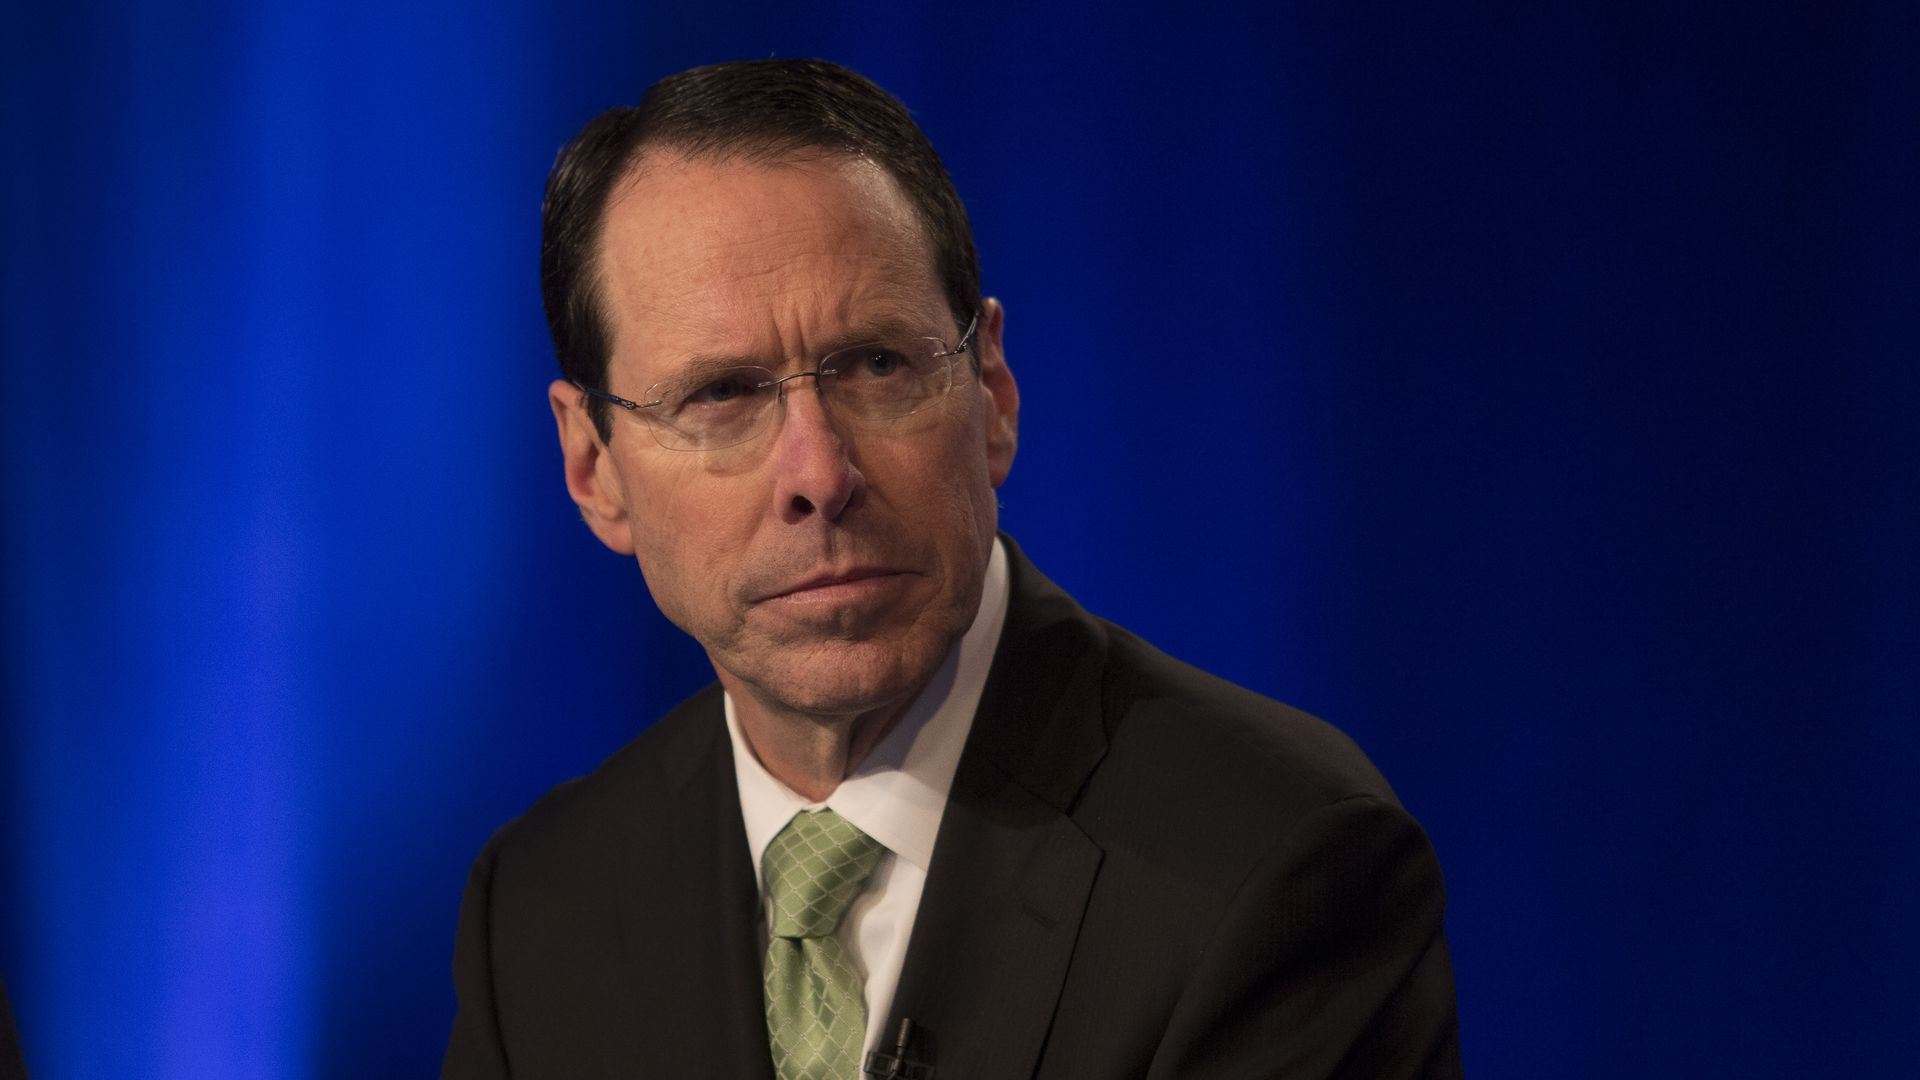 AT&T CEO Randall Stephenson sits in front of a blue backdrop